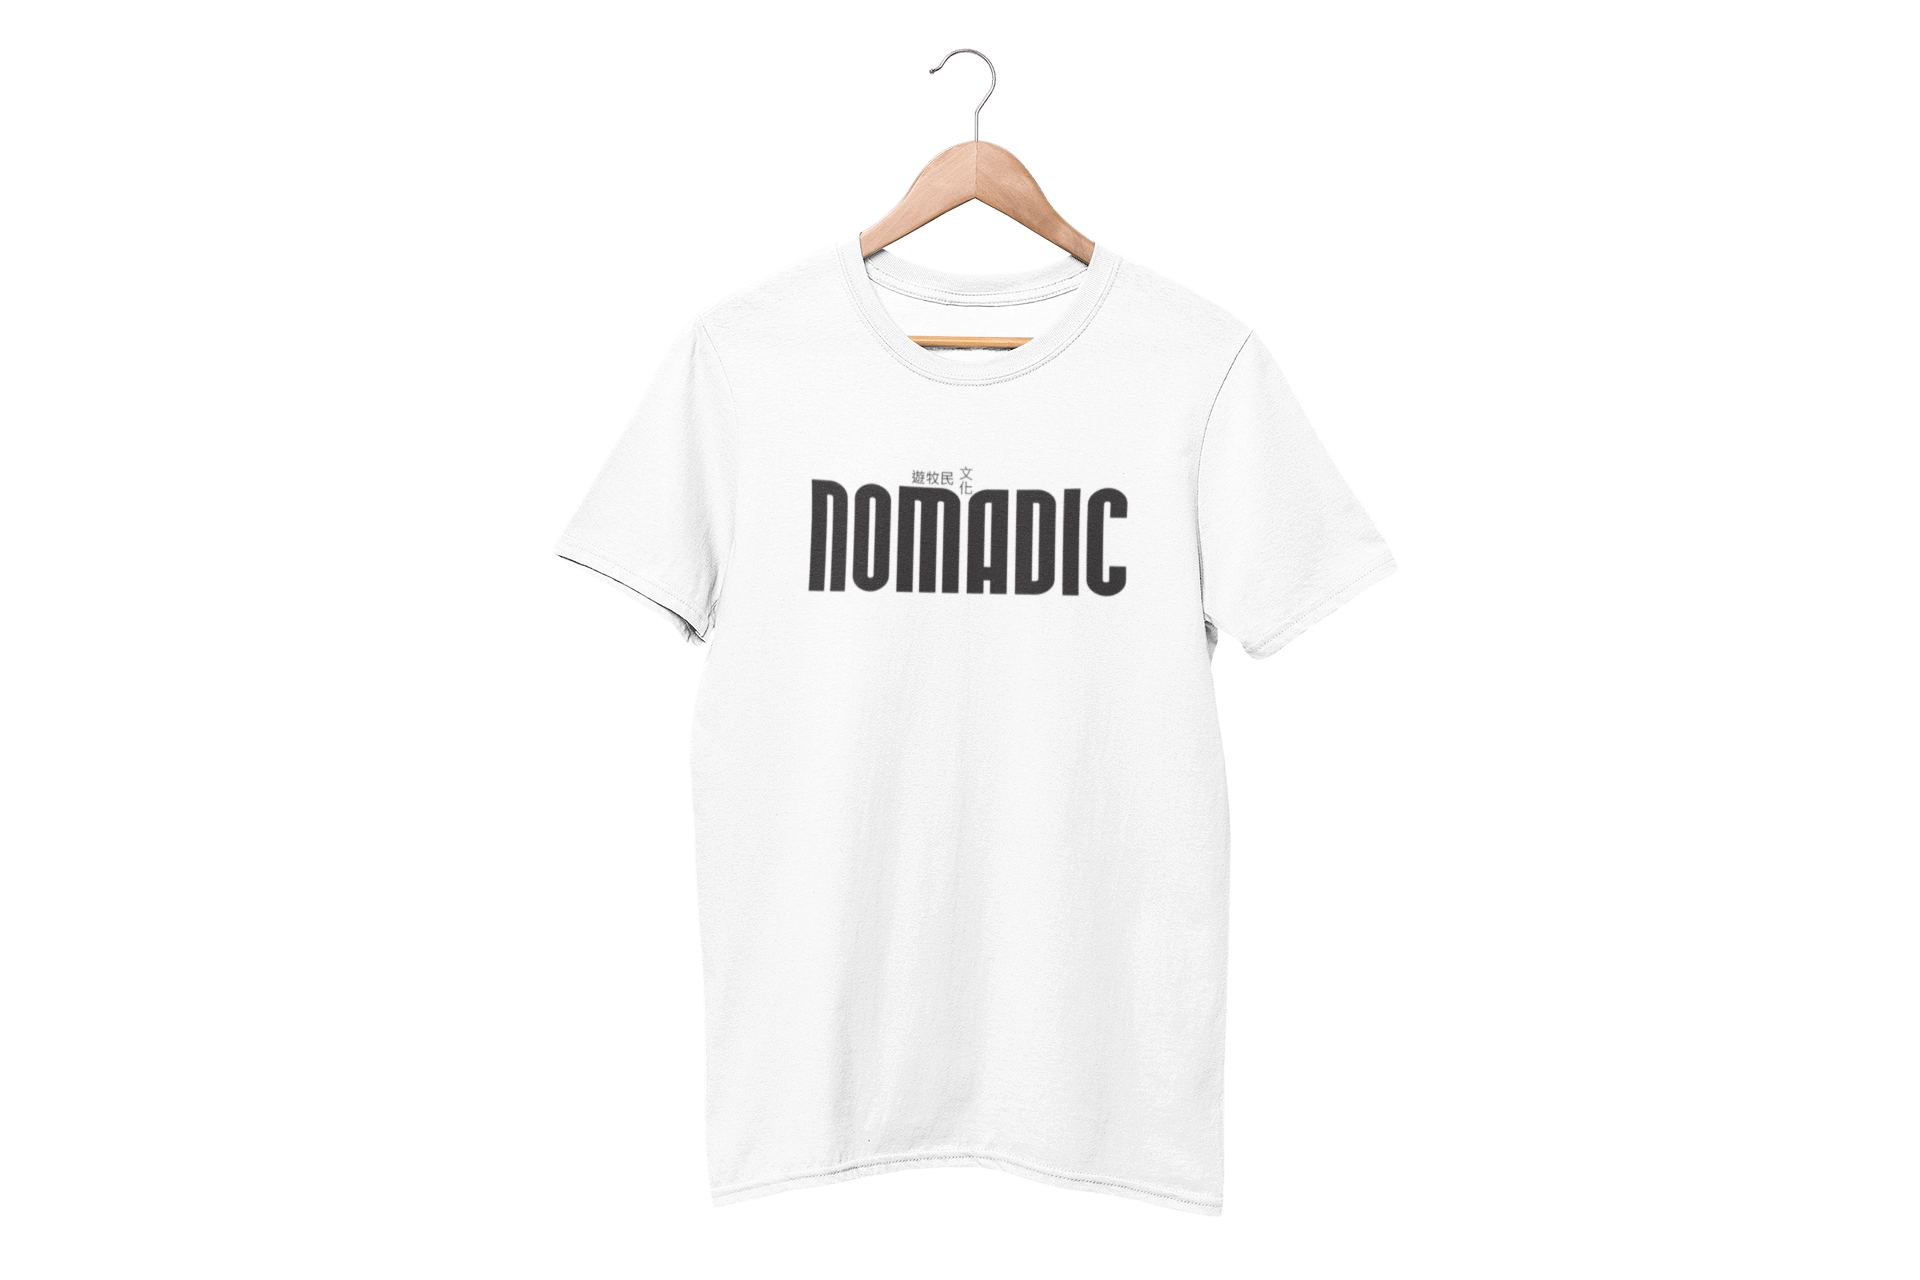 Nomadic White Half Sleeve T-Shirt